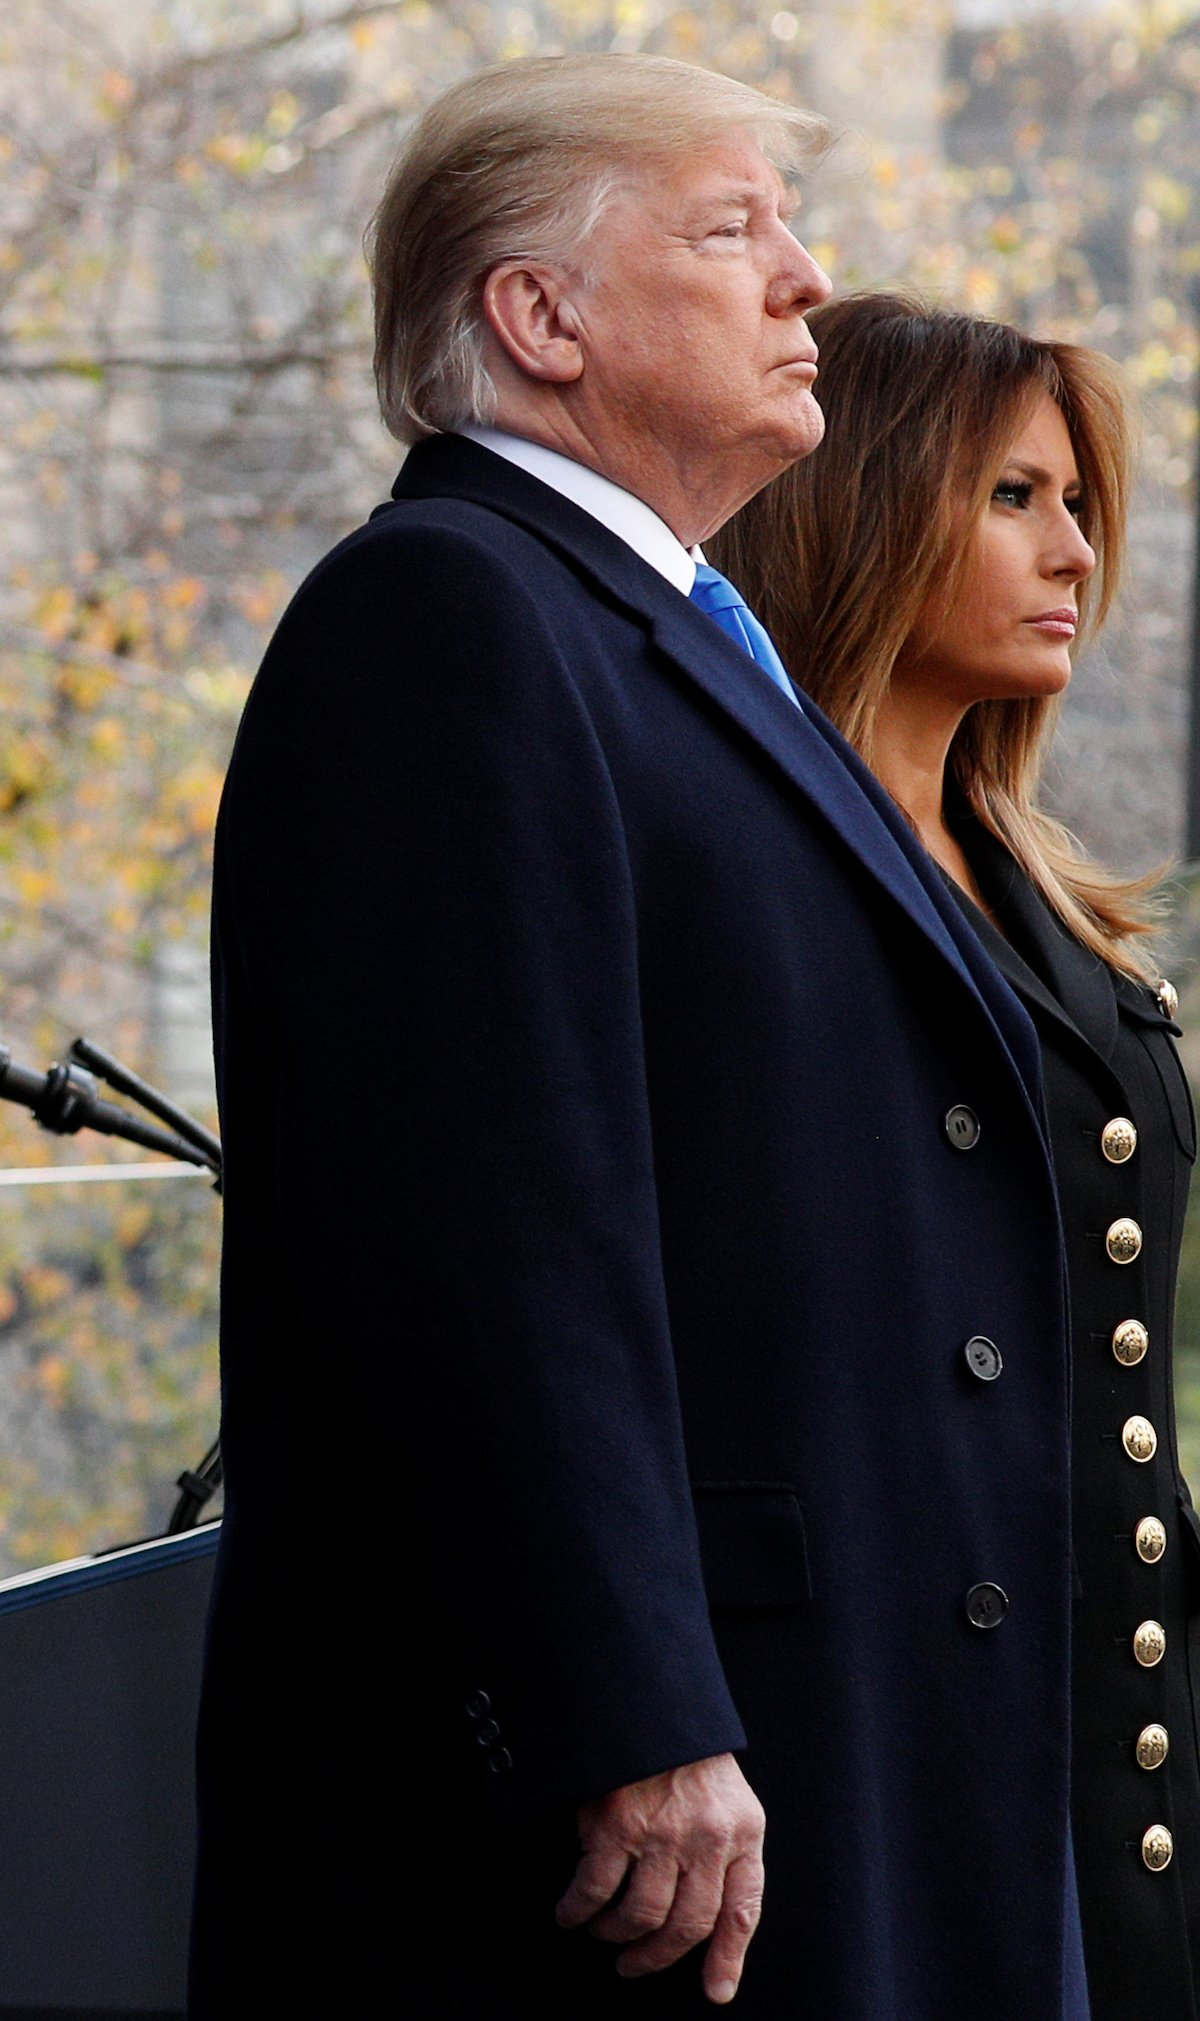 U.S. President Donald Trump and first lady Melania Trump attend the Veterans Day Parade in New York, U.S., November 11, 2019. REUTERS/Tom Brenner